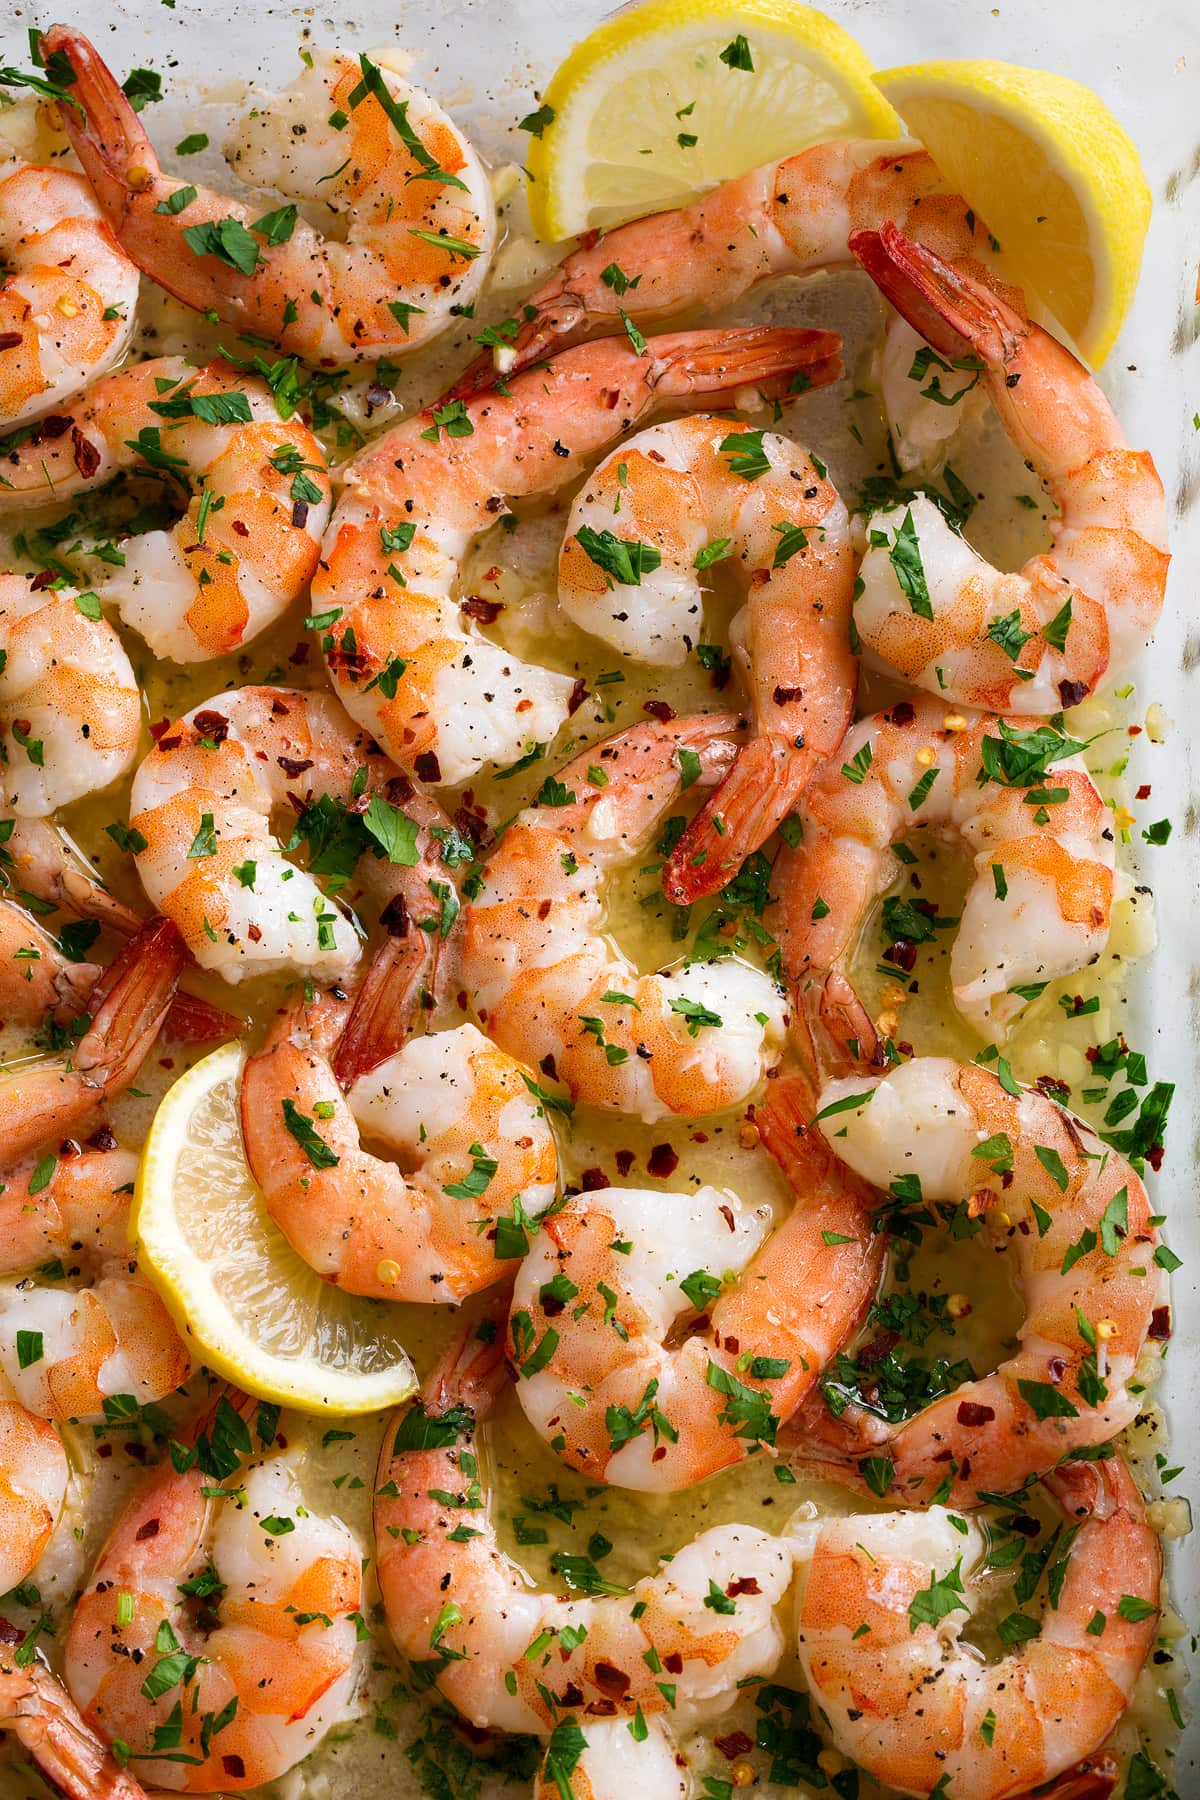 Close up image of baked shrimp in baking dish.